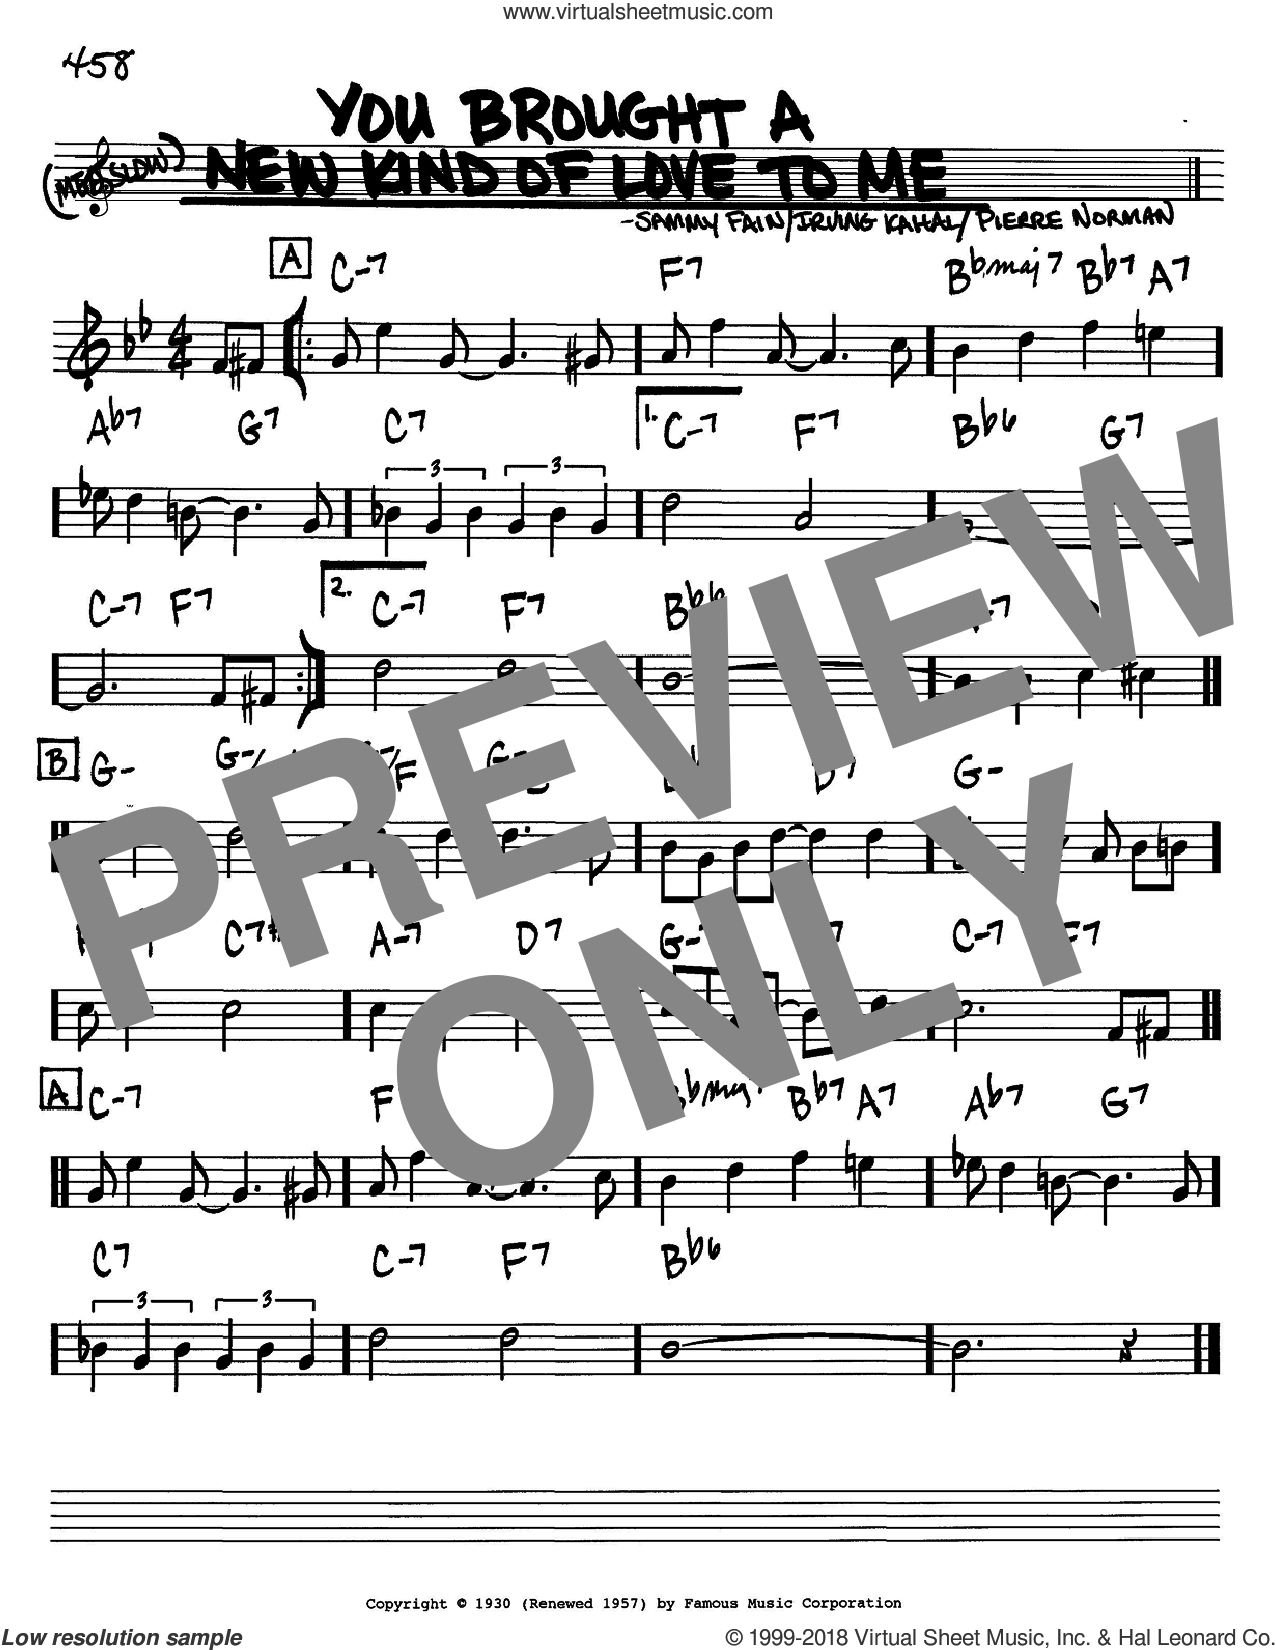 You Brought A New Kind Of Love To Me sheet music for voice and other instruments (Bb) by Sammy Fain